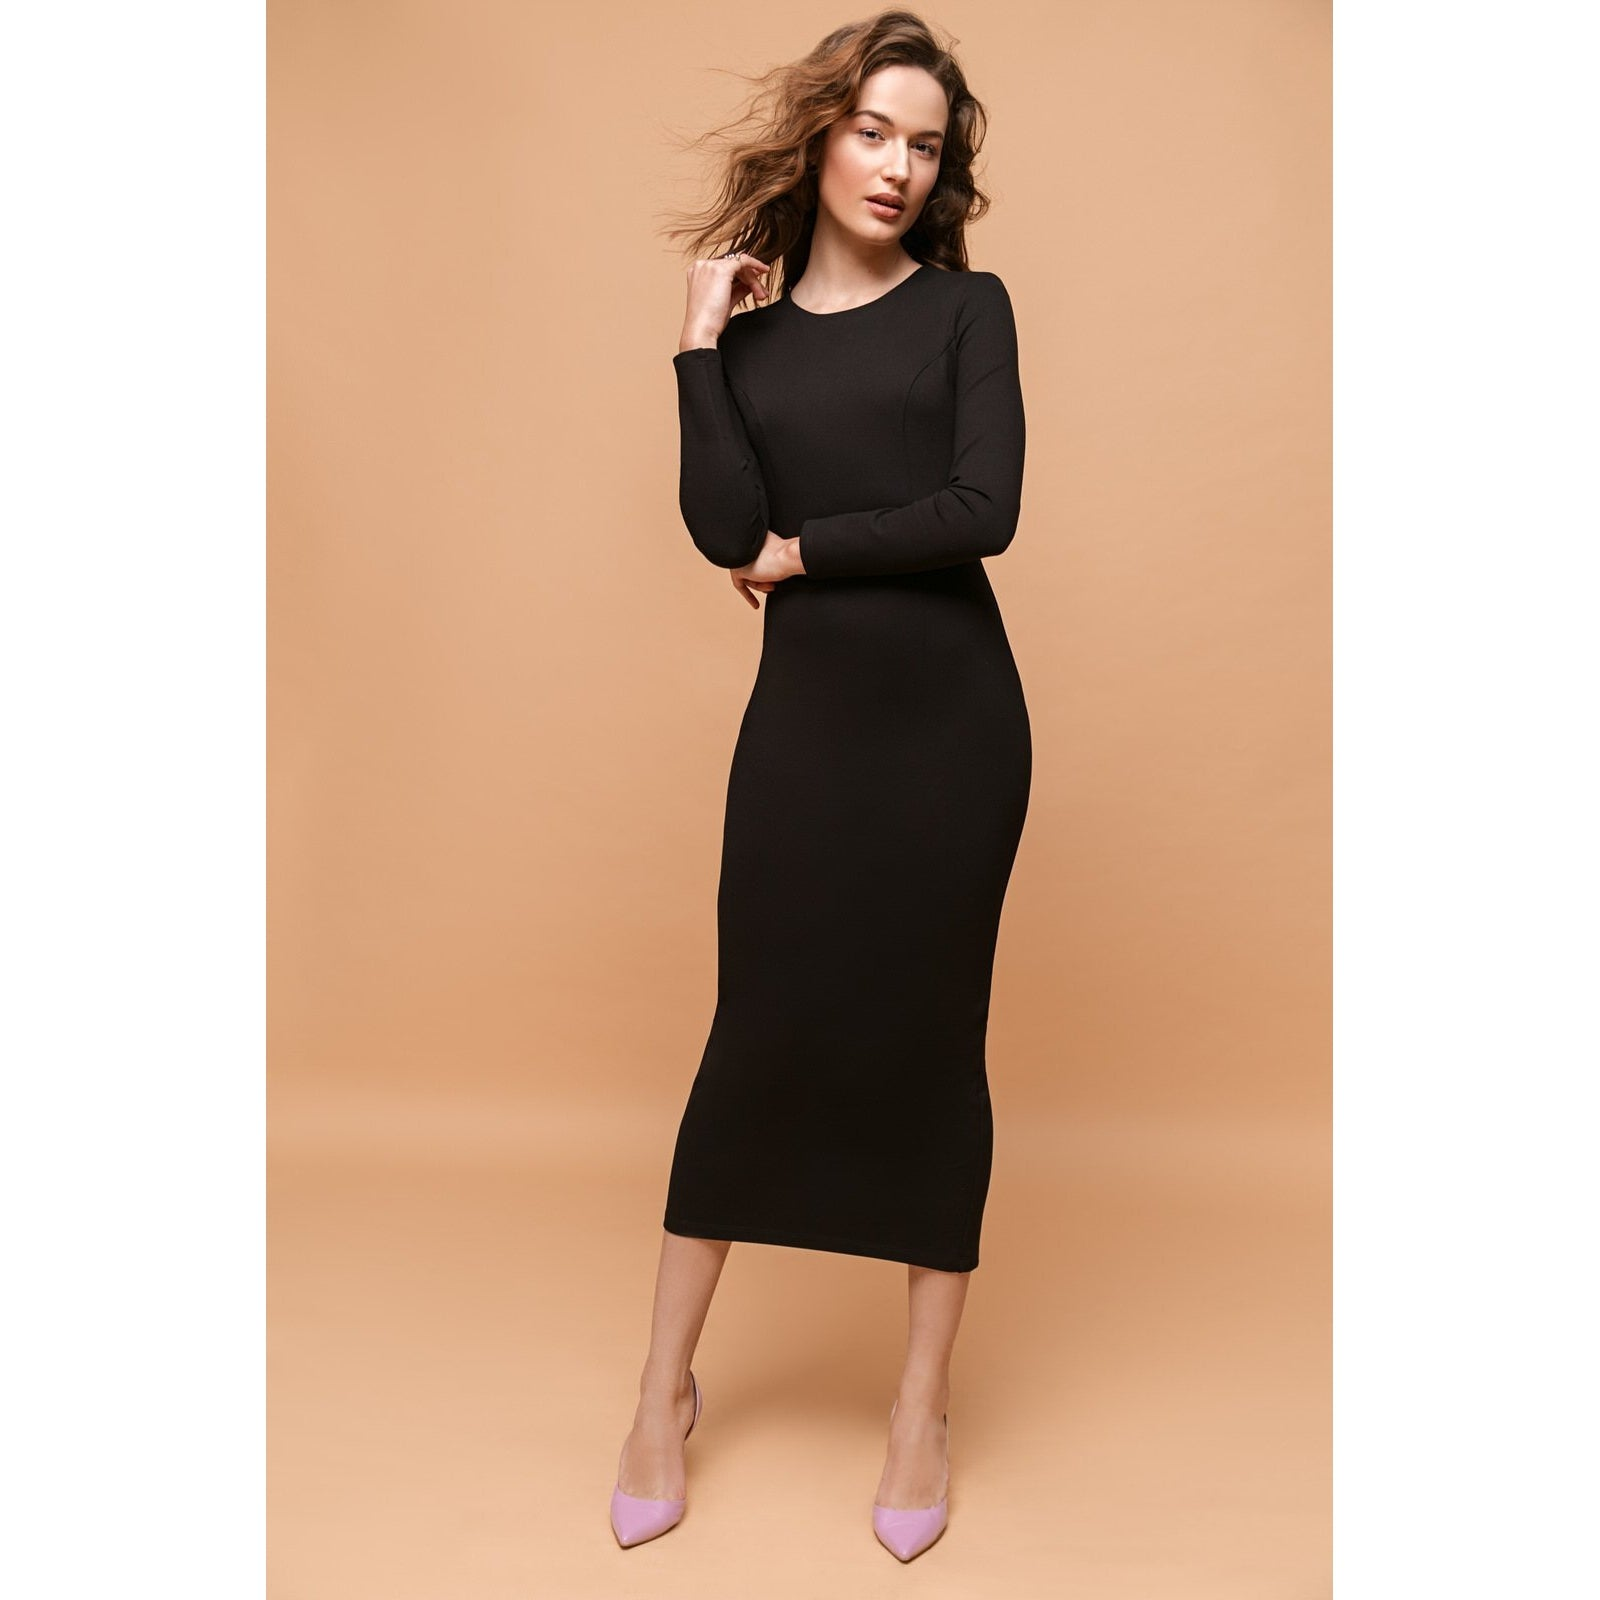 Black Maxi Bodycon Dress Never Let Me Go-OVER THE SEA-HOUSE of BOTTA